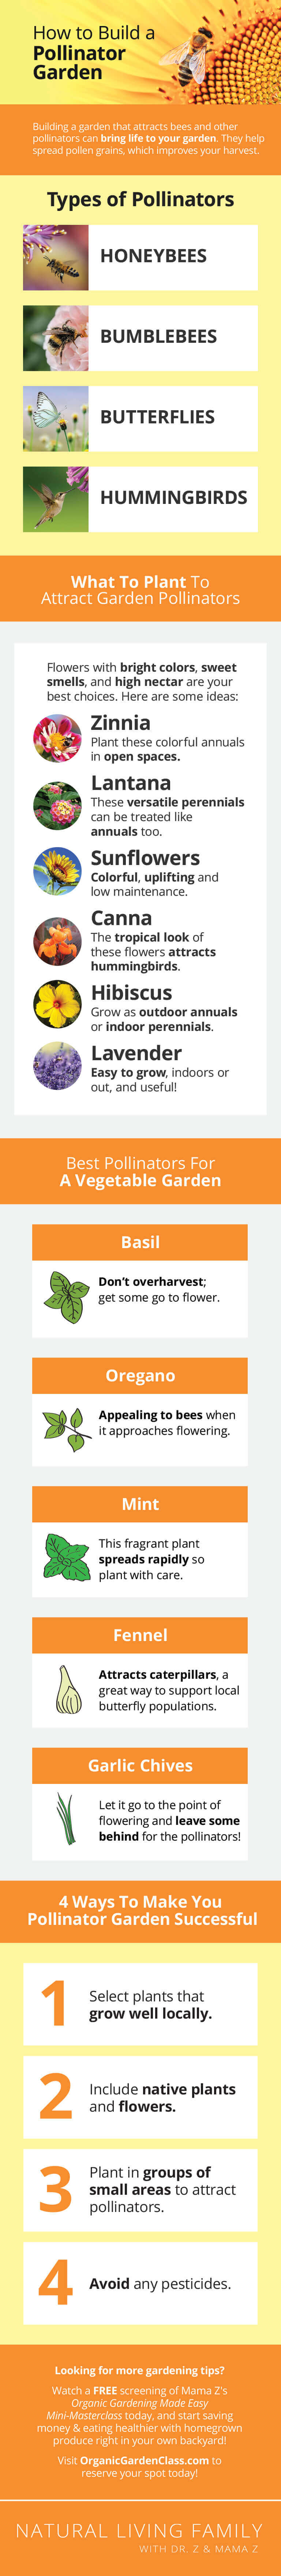 How to Build a Pollinator Garden - Plant List, Growing Tips and more!